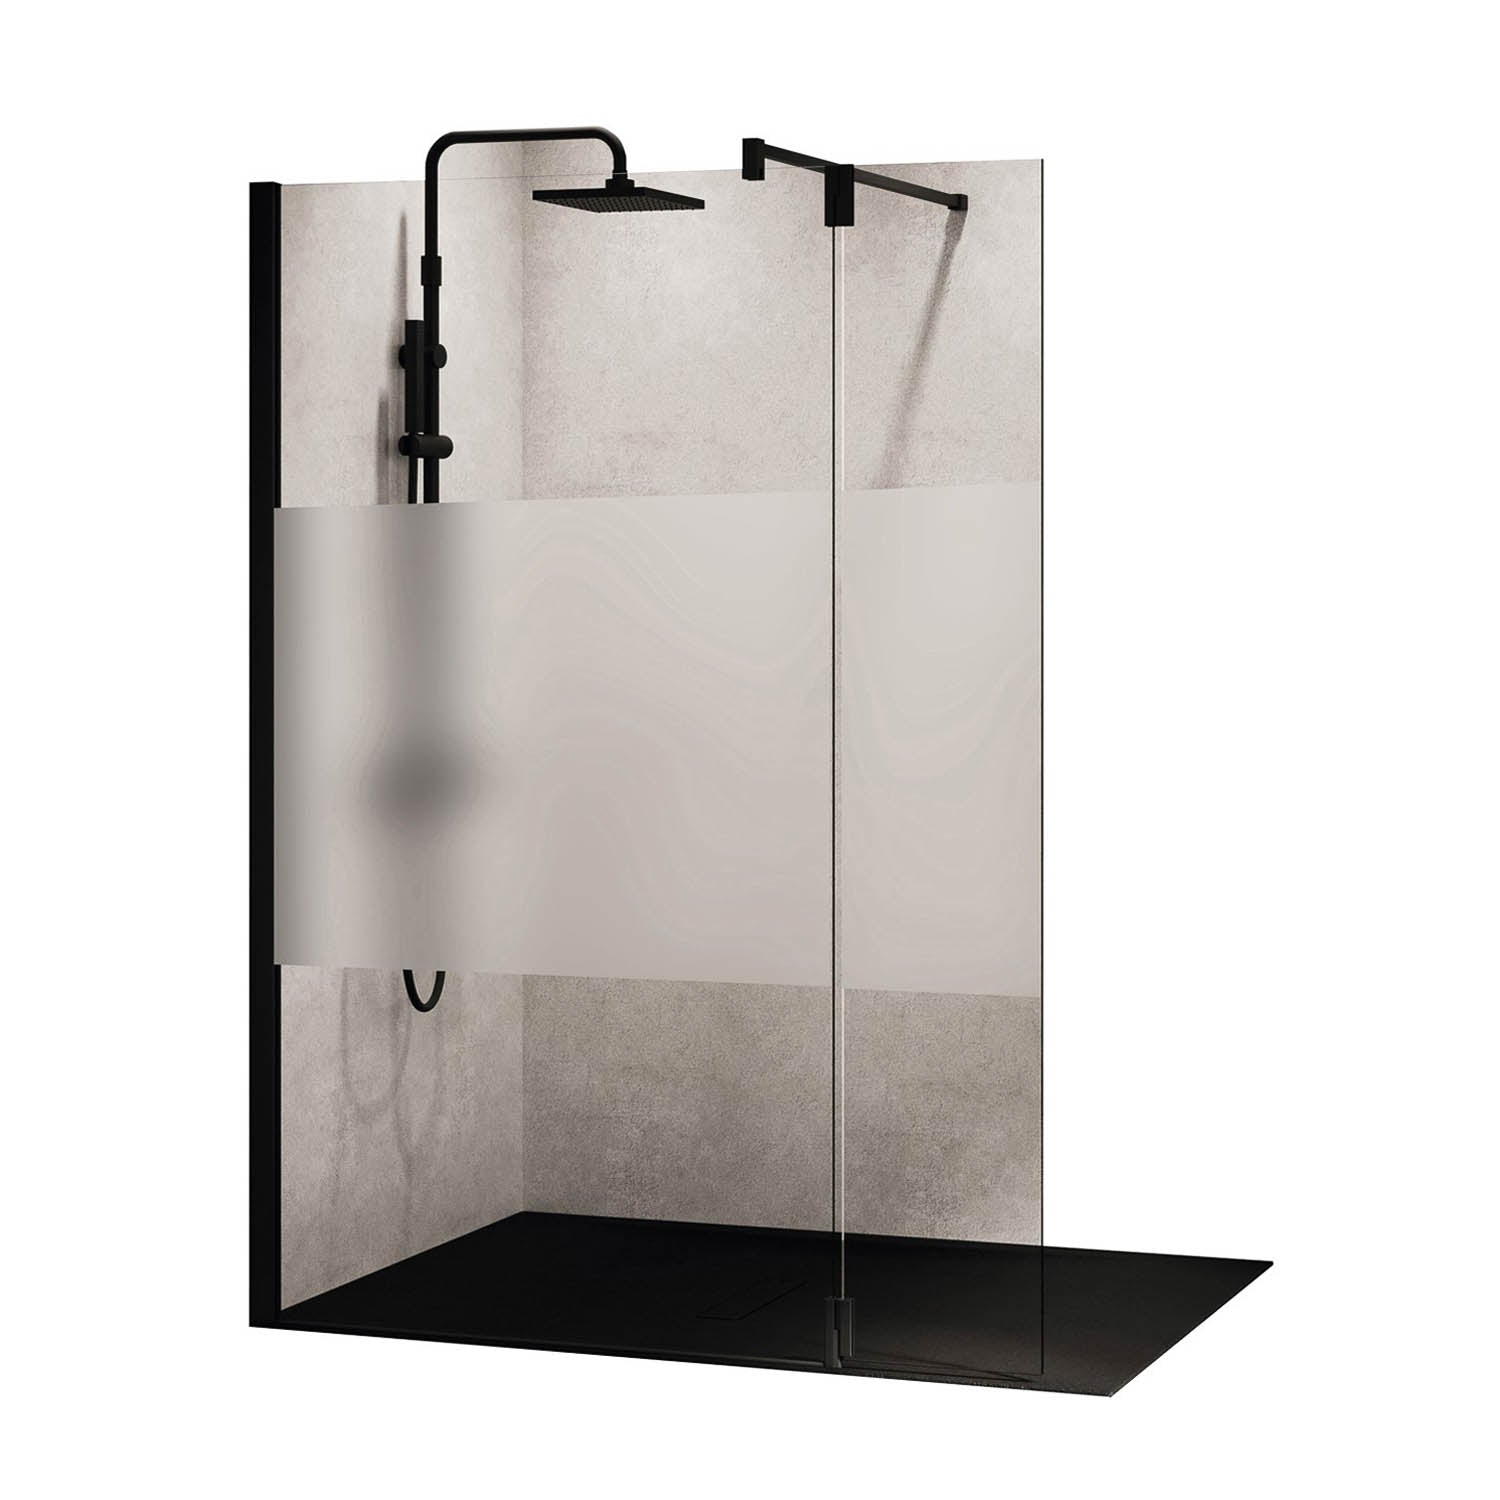 670-700mm Ergo Wet Room Screen Satin Band Glass with a matt black finish on a white background